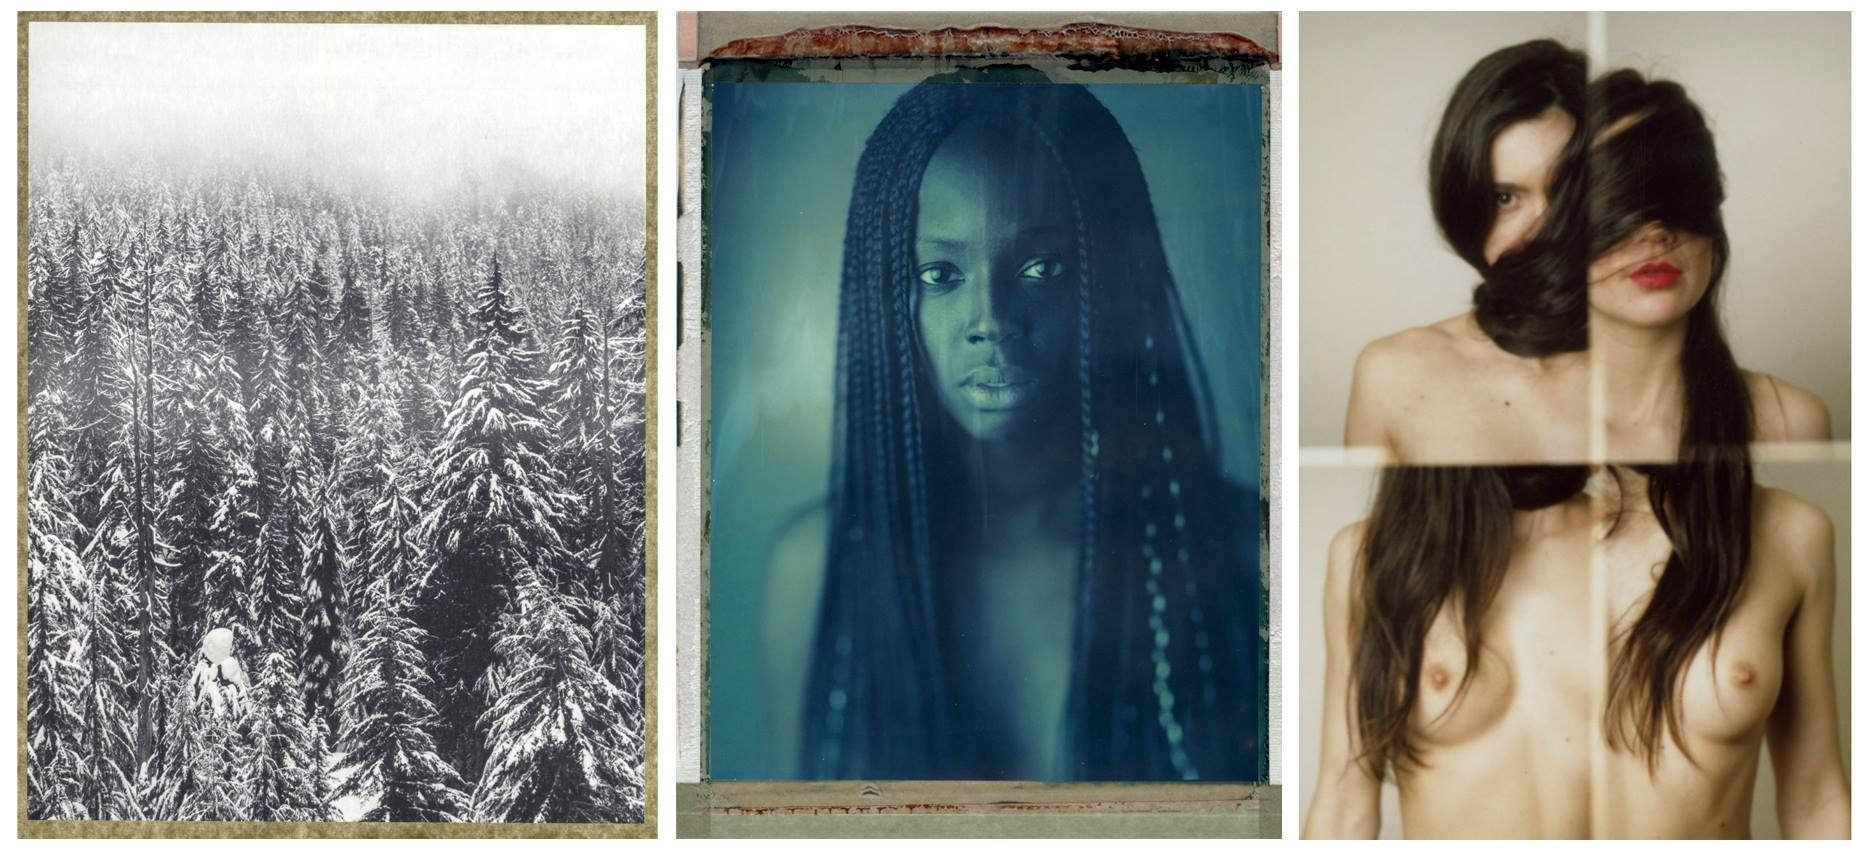 OLIVIER BARJOLLE (FR/UK) - Landscapes SILVANO MAGNONE (IT/BE) - Y&Y + portraits MATHIEU ANDRIEUX (FR) - Corpus imperfectis